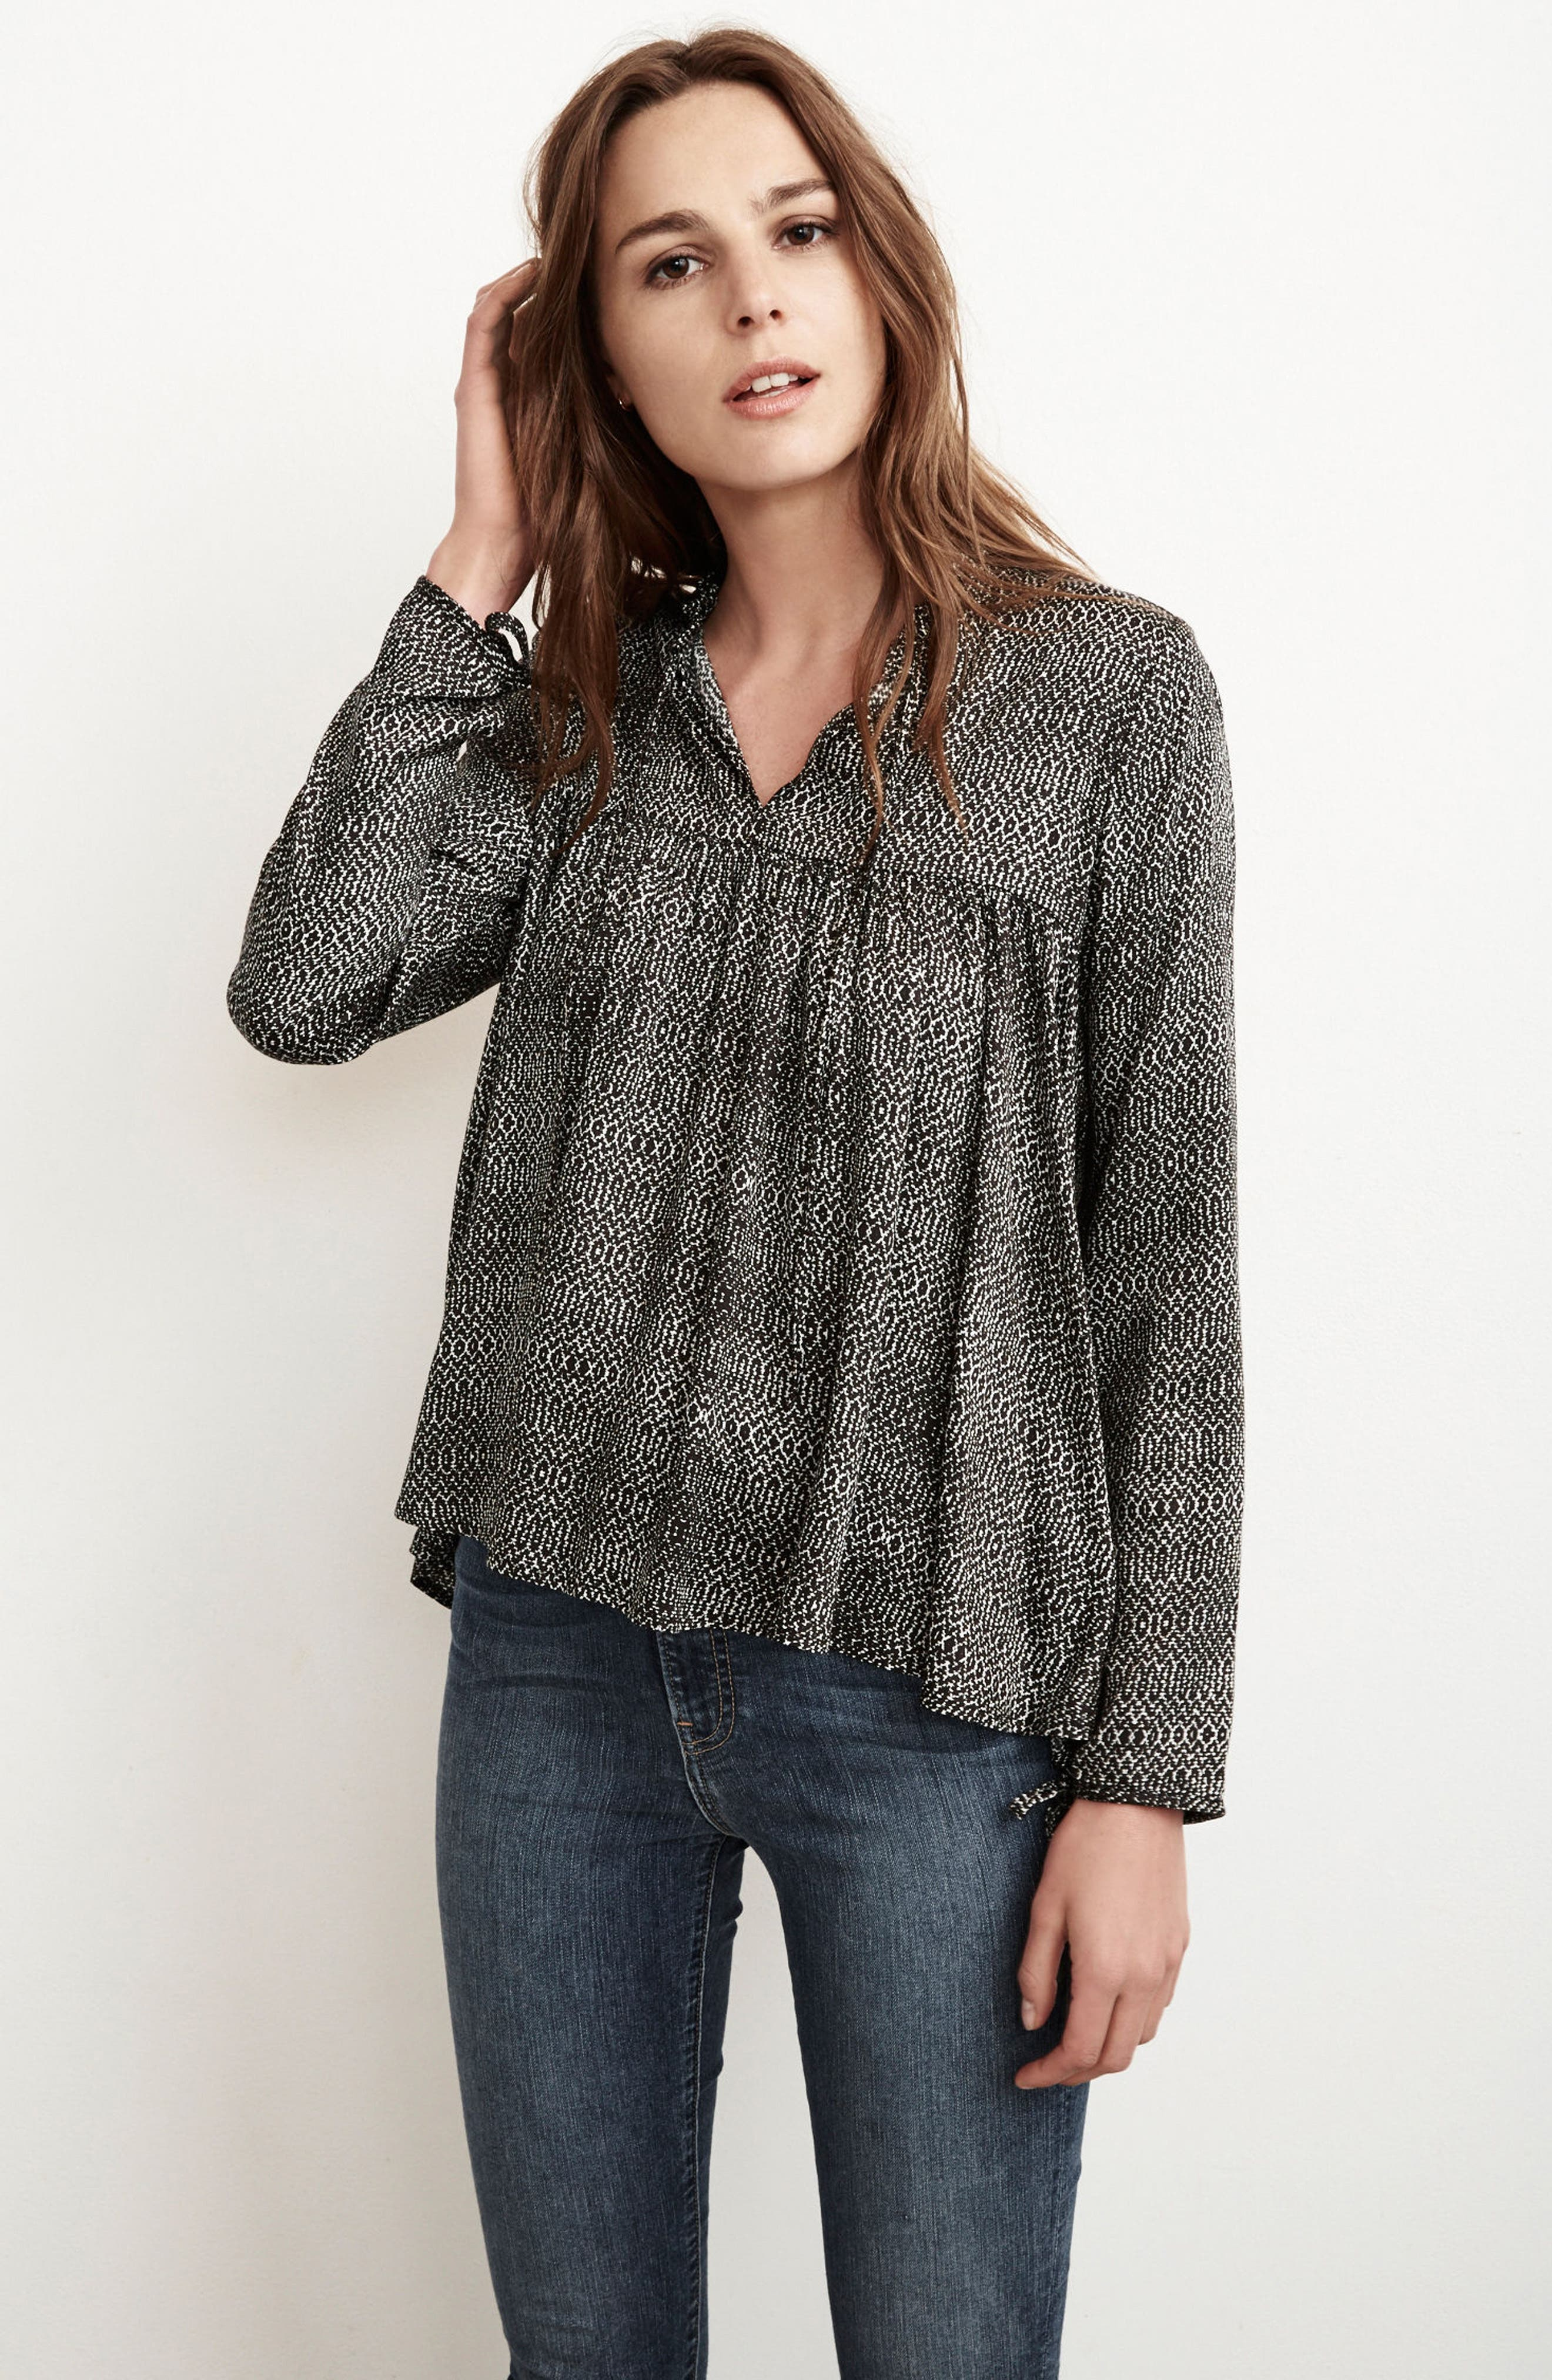 Shirred Woven Print Top,                             Alternate thumbnail 2, color,                             Crackle